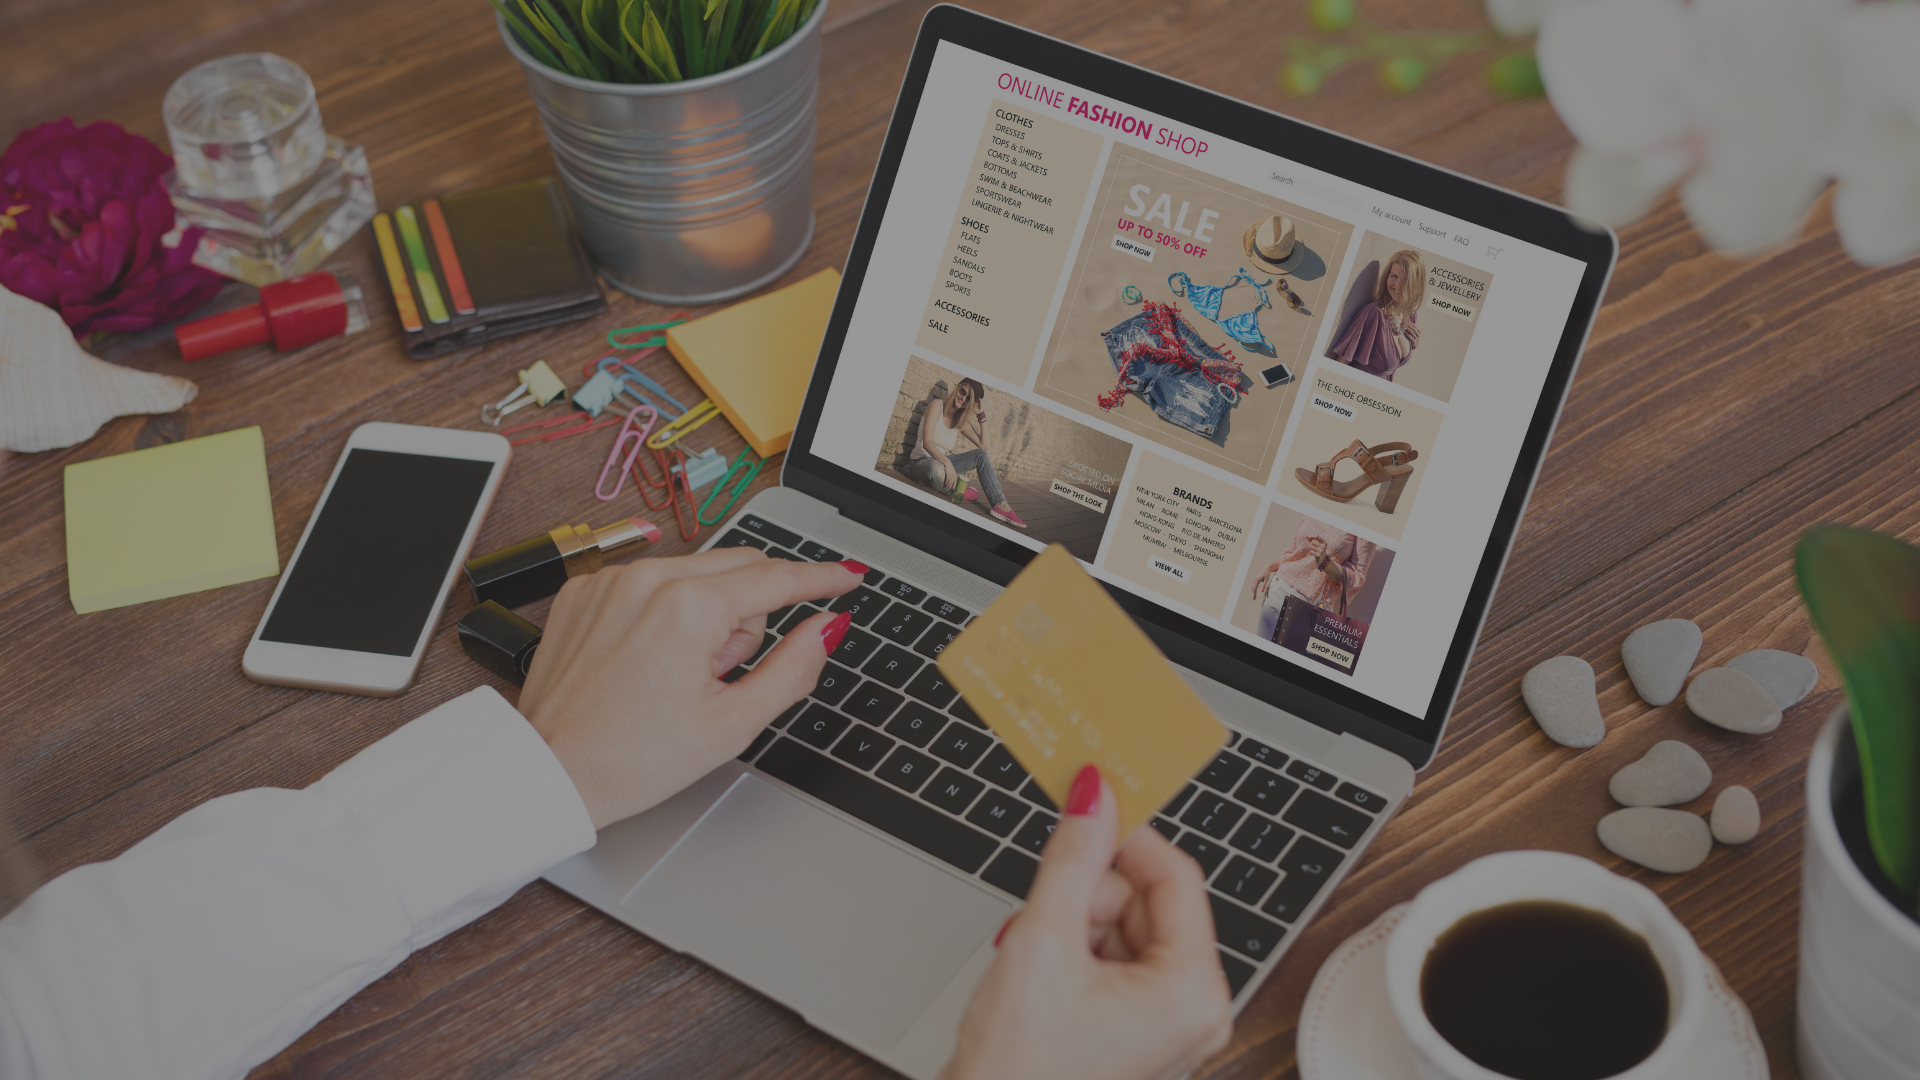 7 E-Commerce Trends to Improve the Customer Experience in 2021 and Beyond